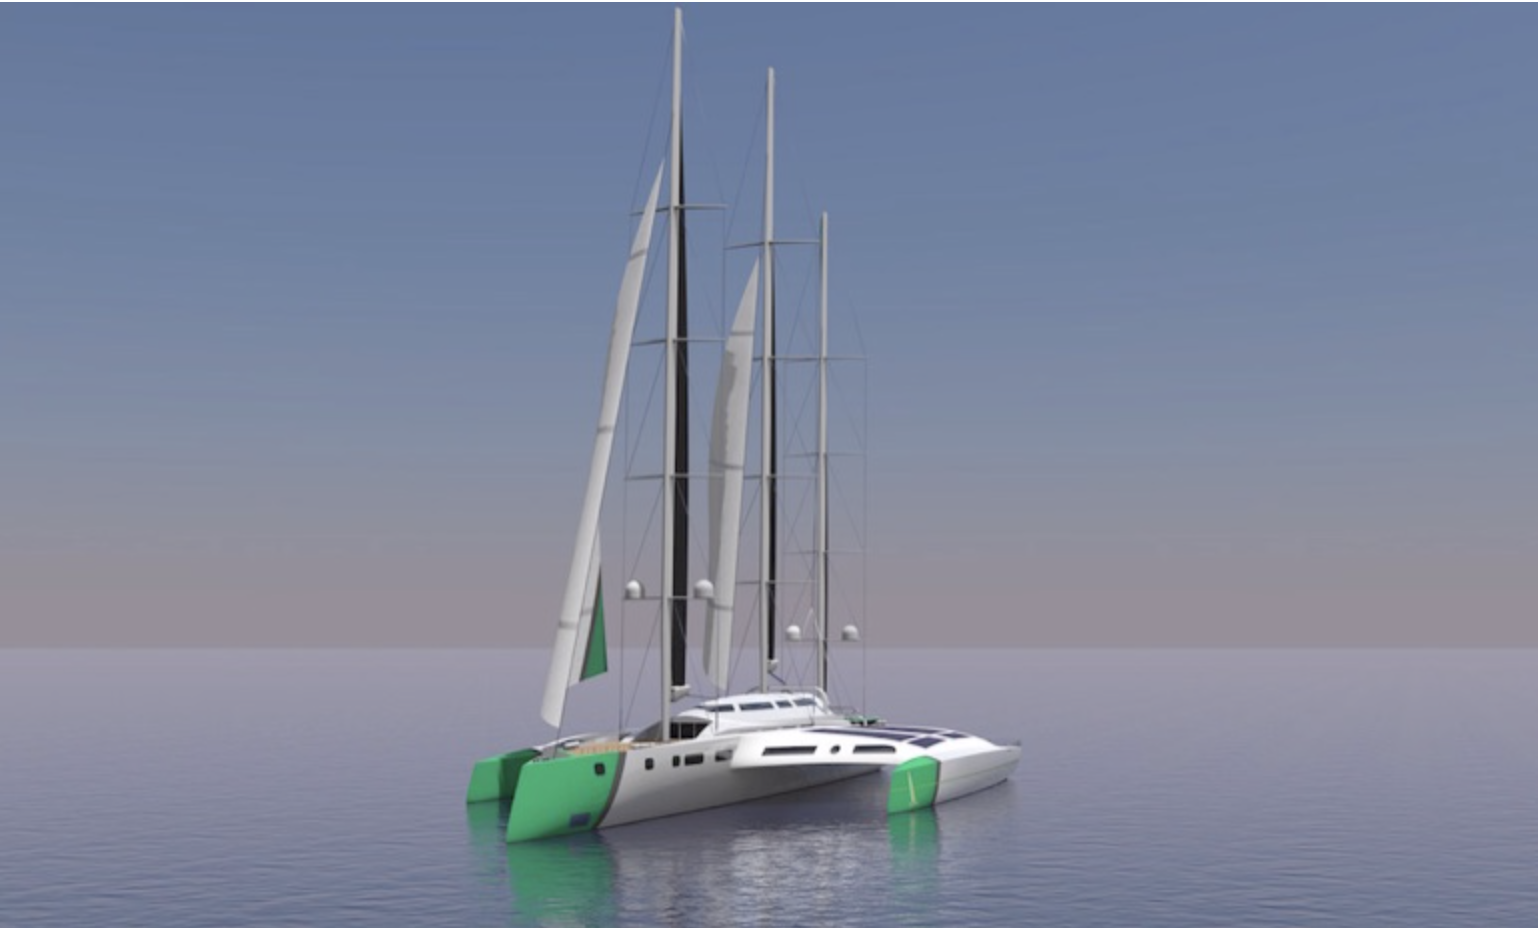 VoyageVert has a vision to build a transoceanic, sustainable passenger ferry powered entirely by wind